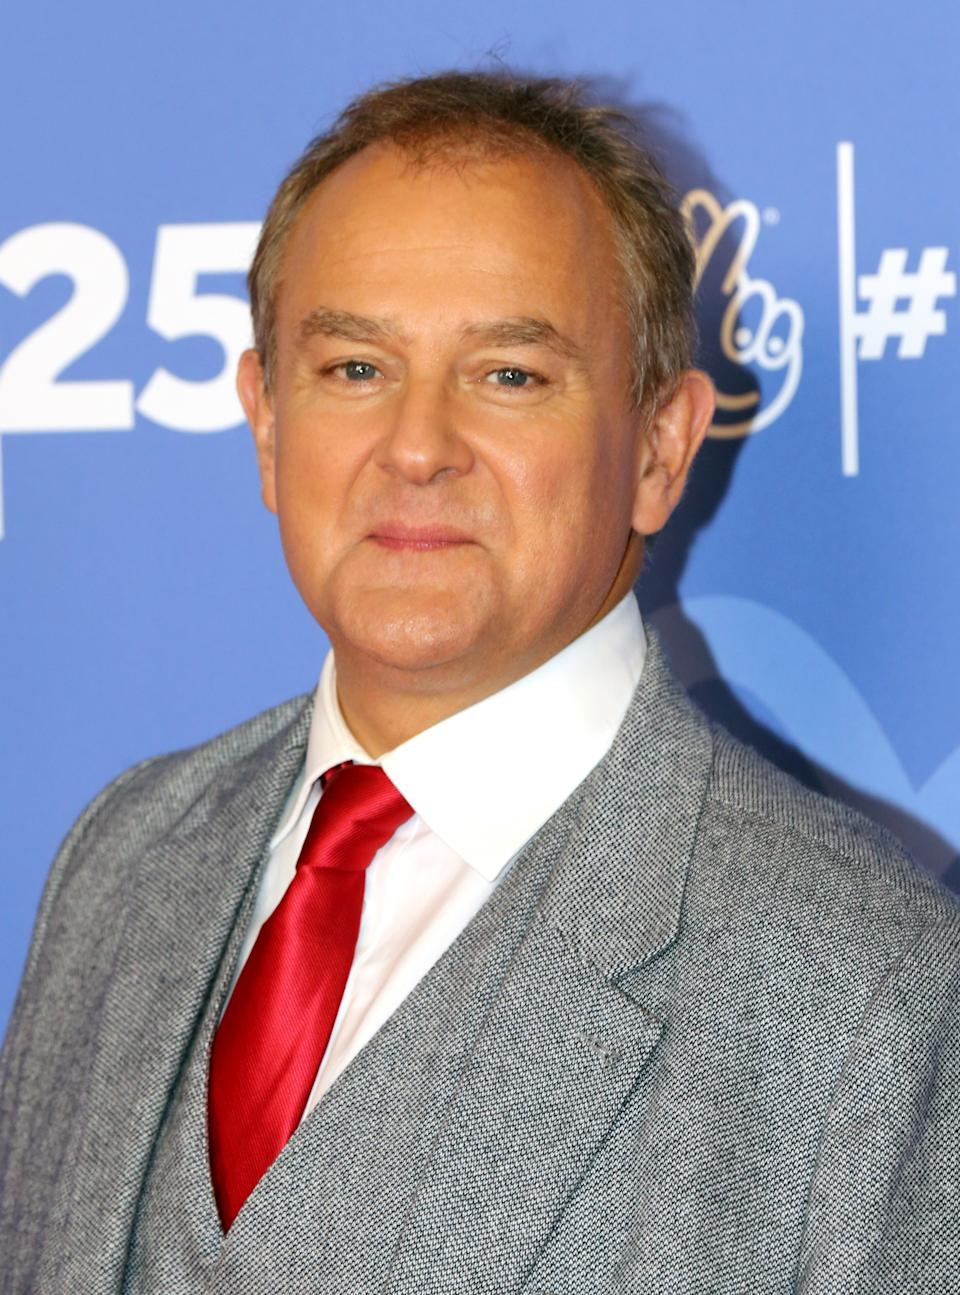 Hugh Bonneville attending the 25th Birthday National Lottery Awards, the search for the UK's favourite National Lottery-funded projects. (Photo by Isabel Infantes/PA Images via Getty Images)